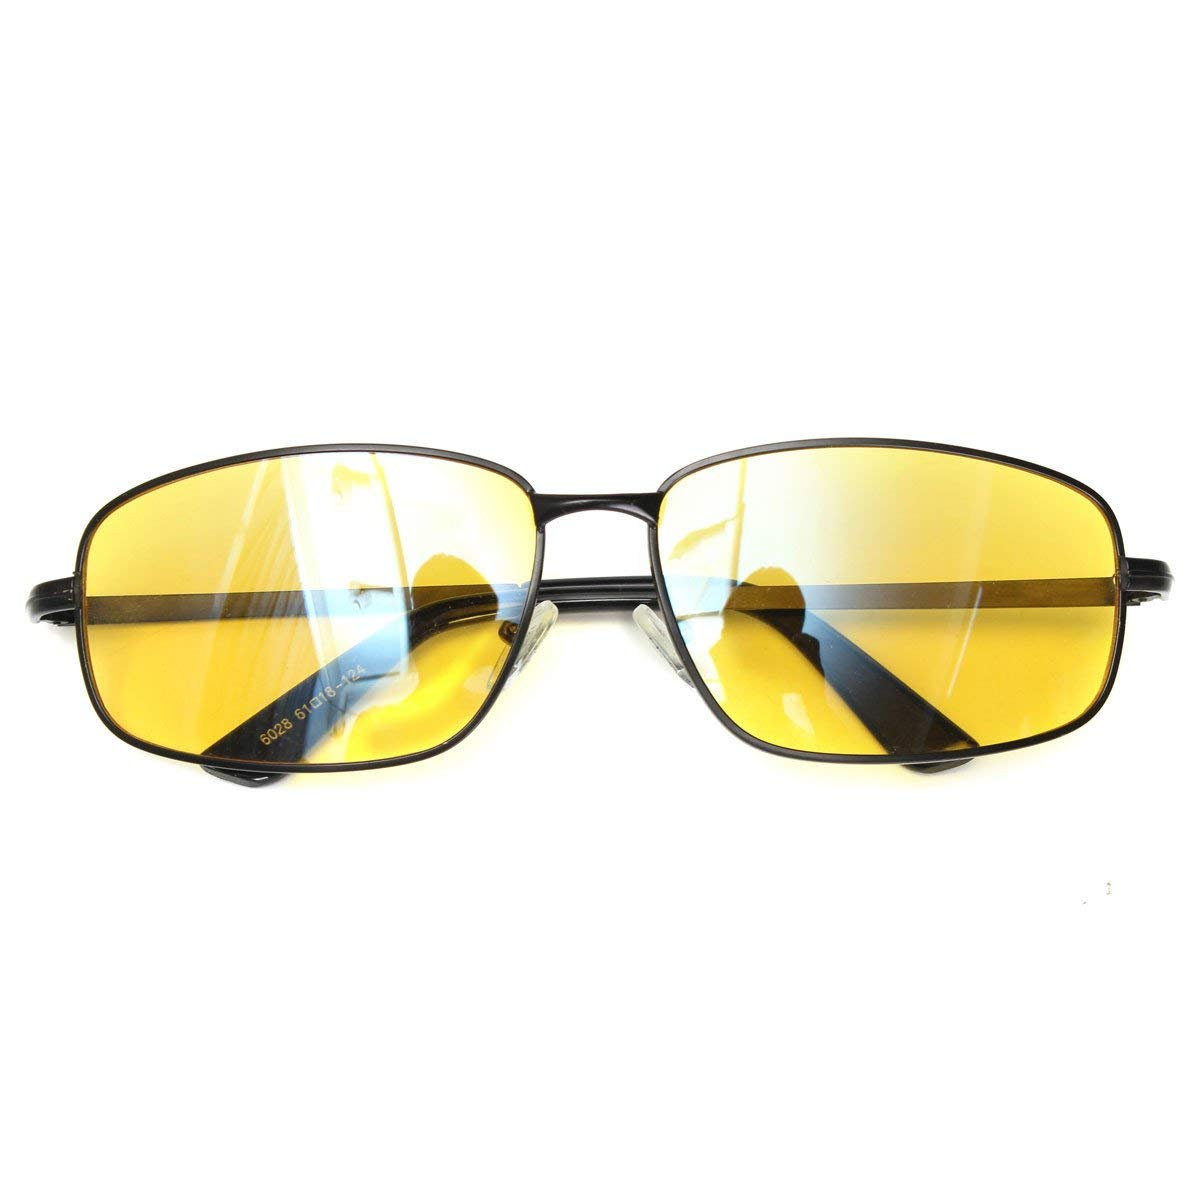 a1612d4a4601 Radiation Anti Fatigue Glasses Plano Blue OLP Ray Protection Glasses -  Safety   Protective Gear Goggles